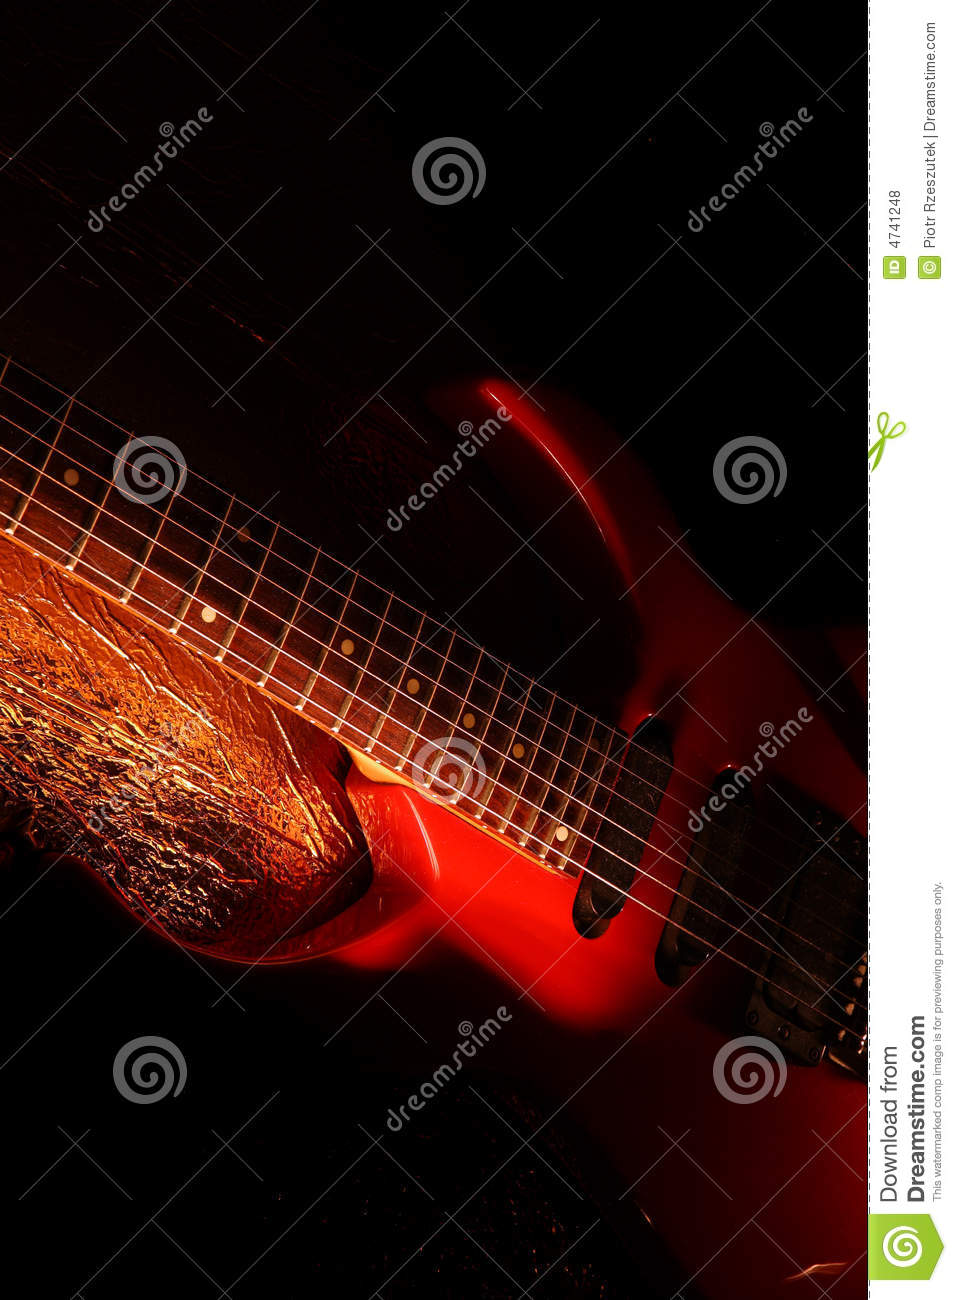 music time guitar abstract - photo #1